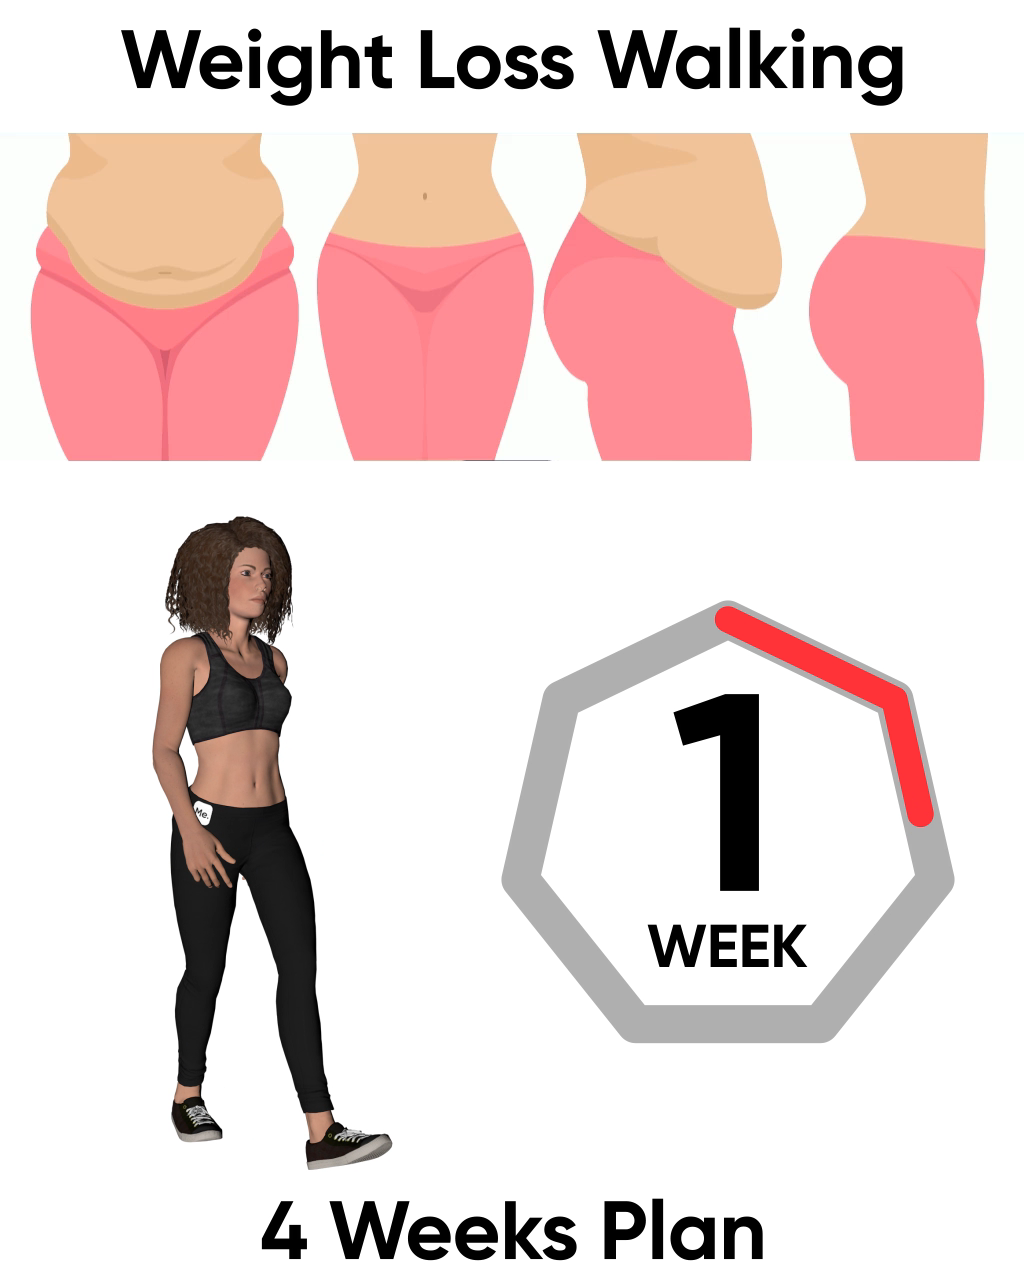 Lose the Extra Weight with 4-Week Walking Plan